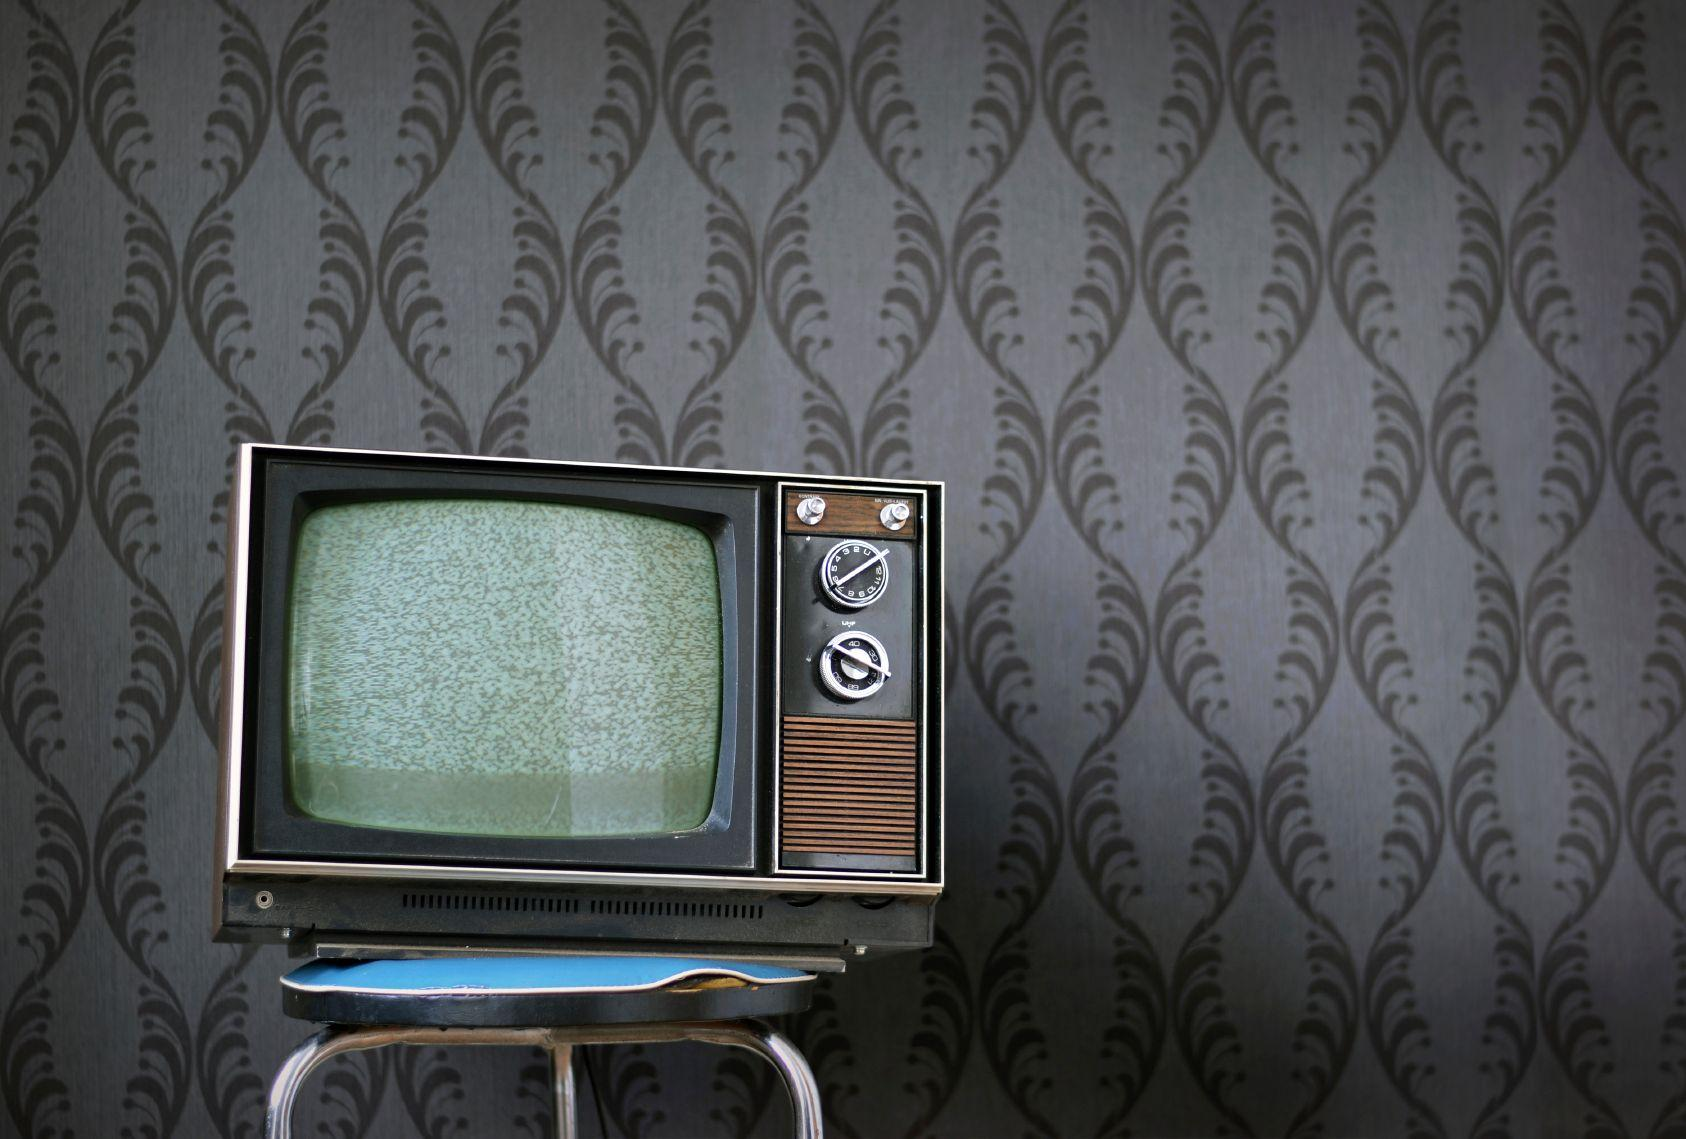 A retro looking TV in front of wallpaper